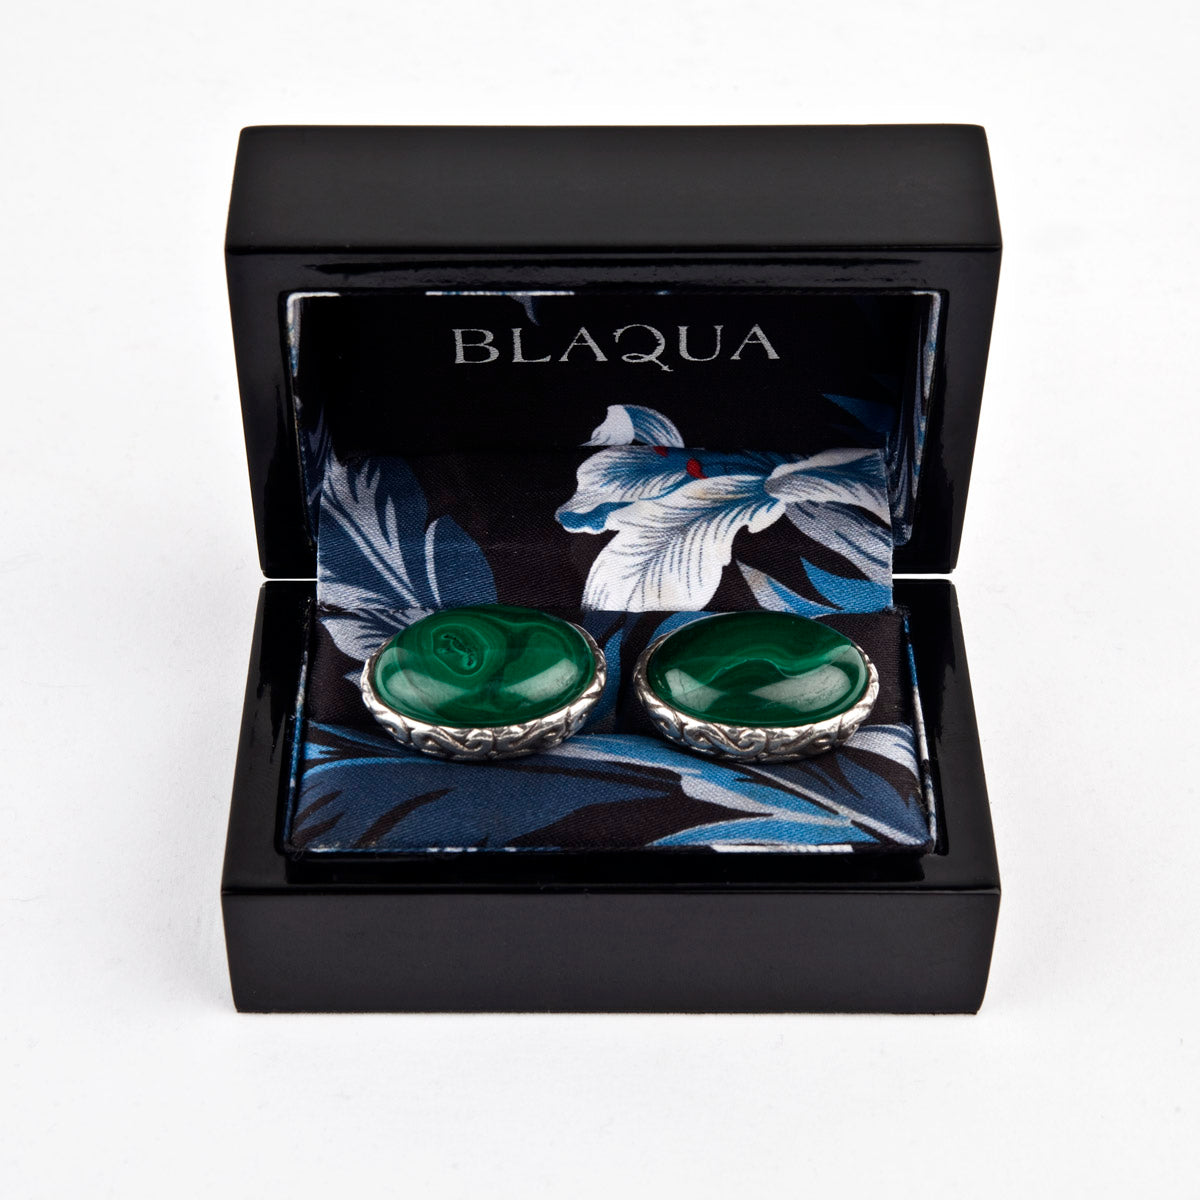 Sterling Silver Baroque Oval Cufflinks set with Malachite